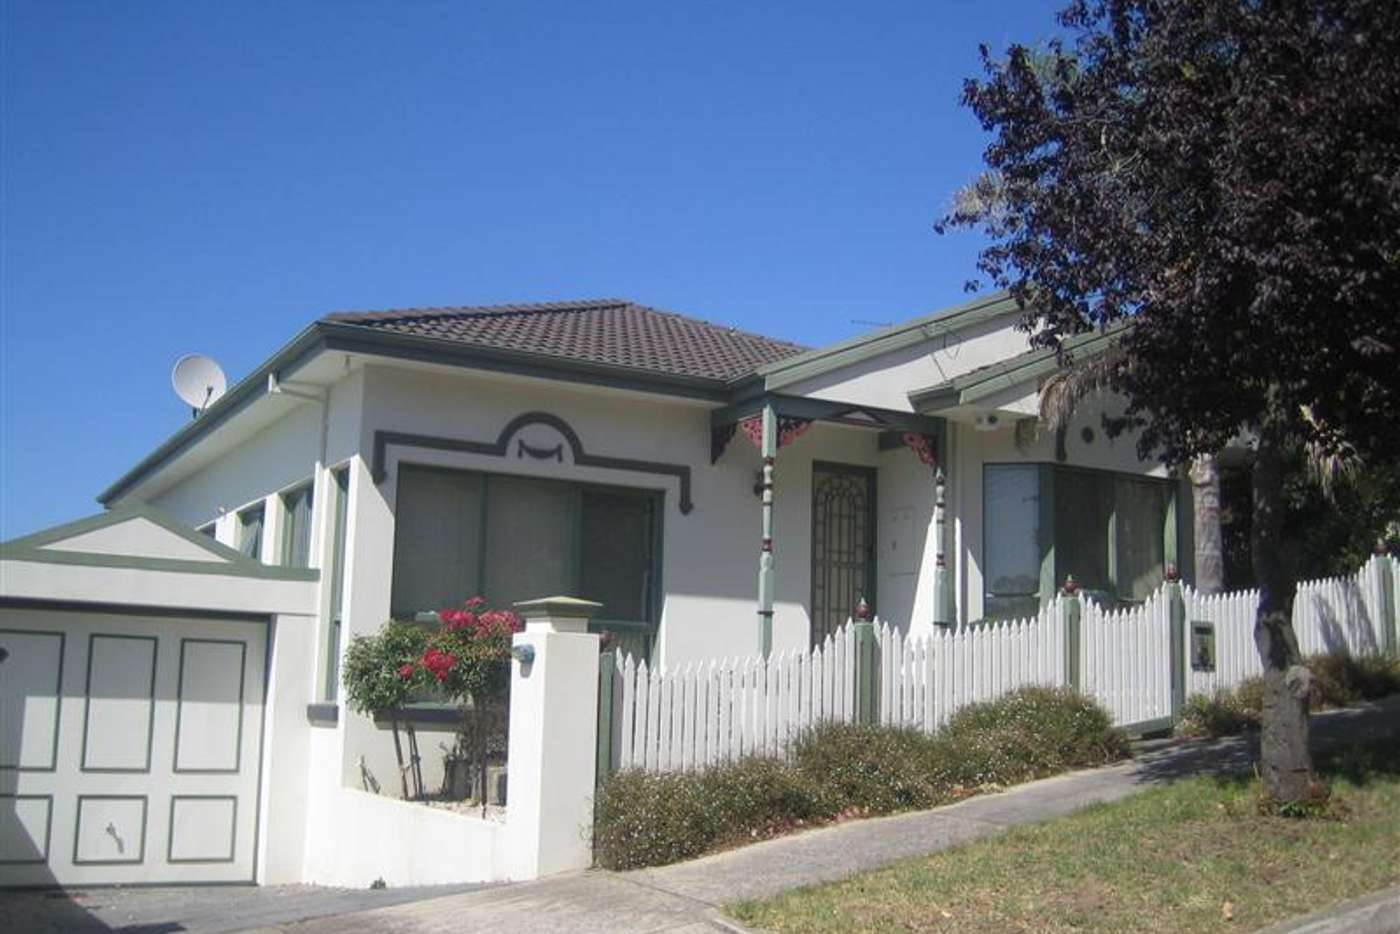 Main view of Homely house listing, 12A Baird Street North, Doncaster VIC 3108